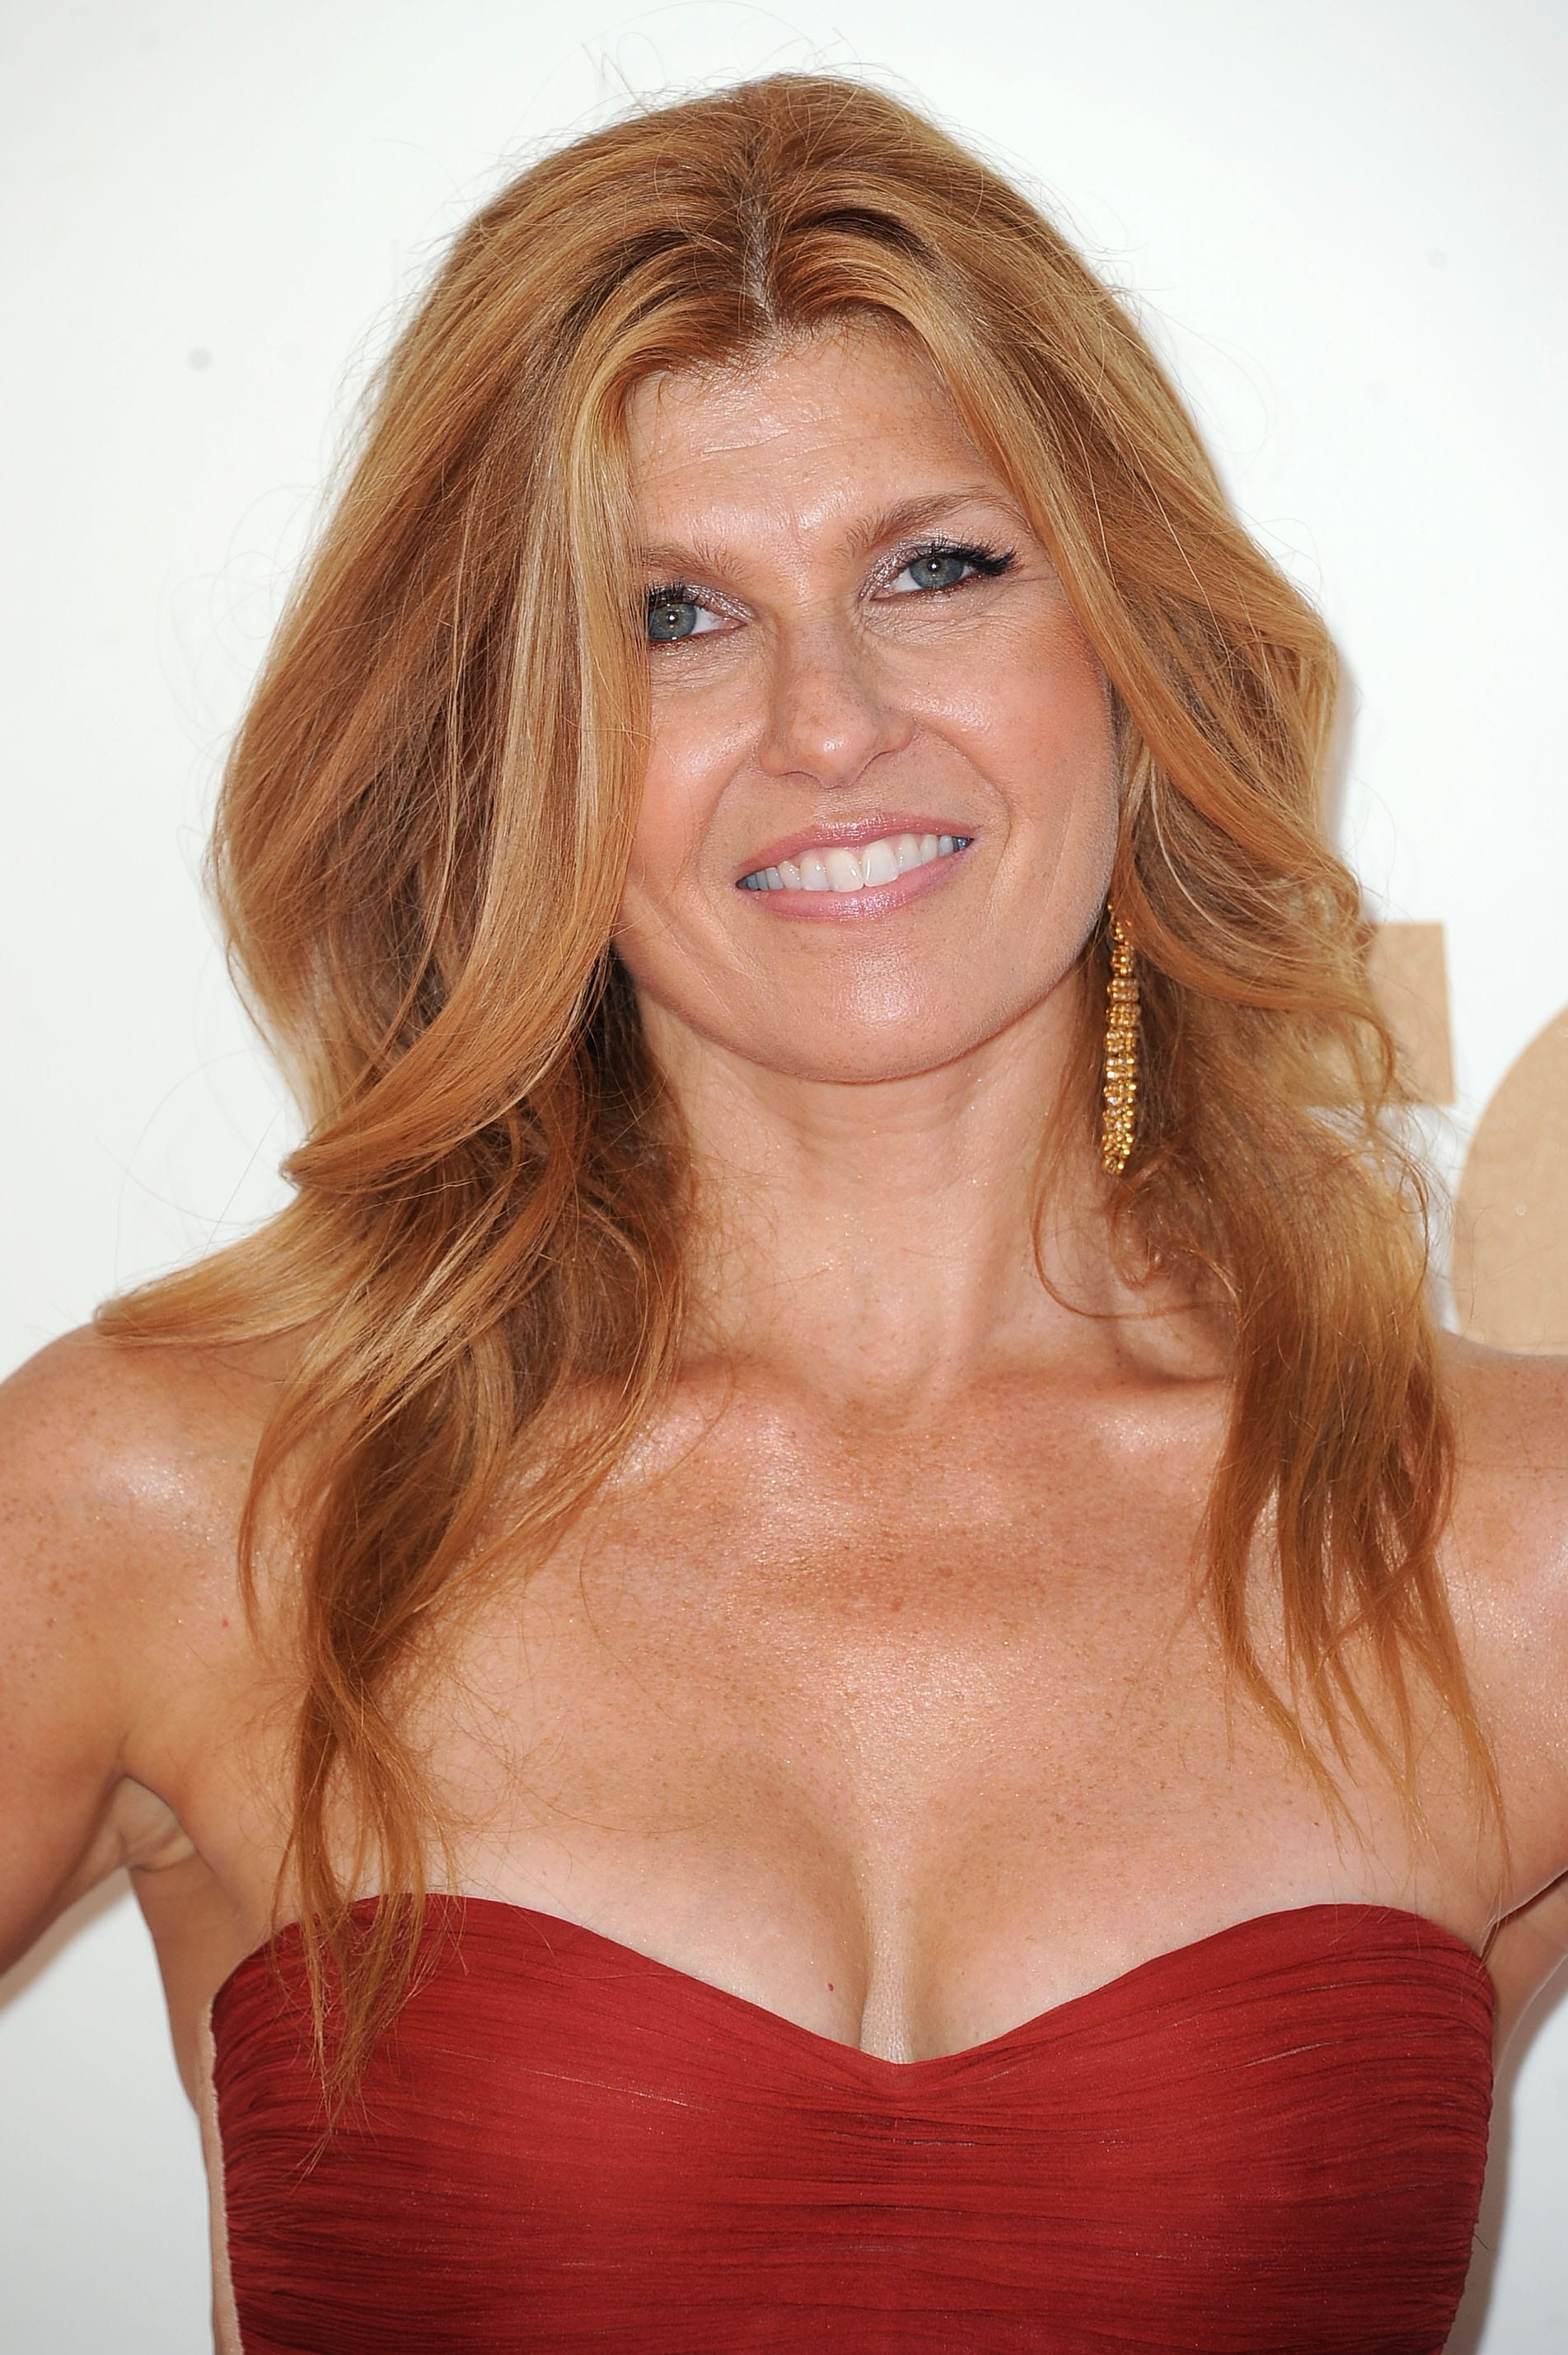 Connie Britton HQ wallpapers